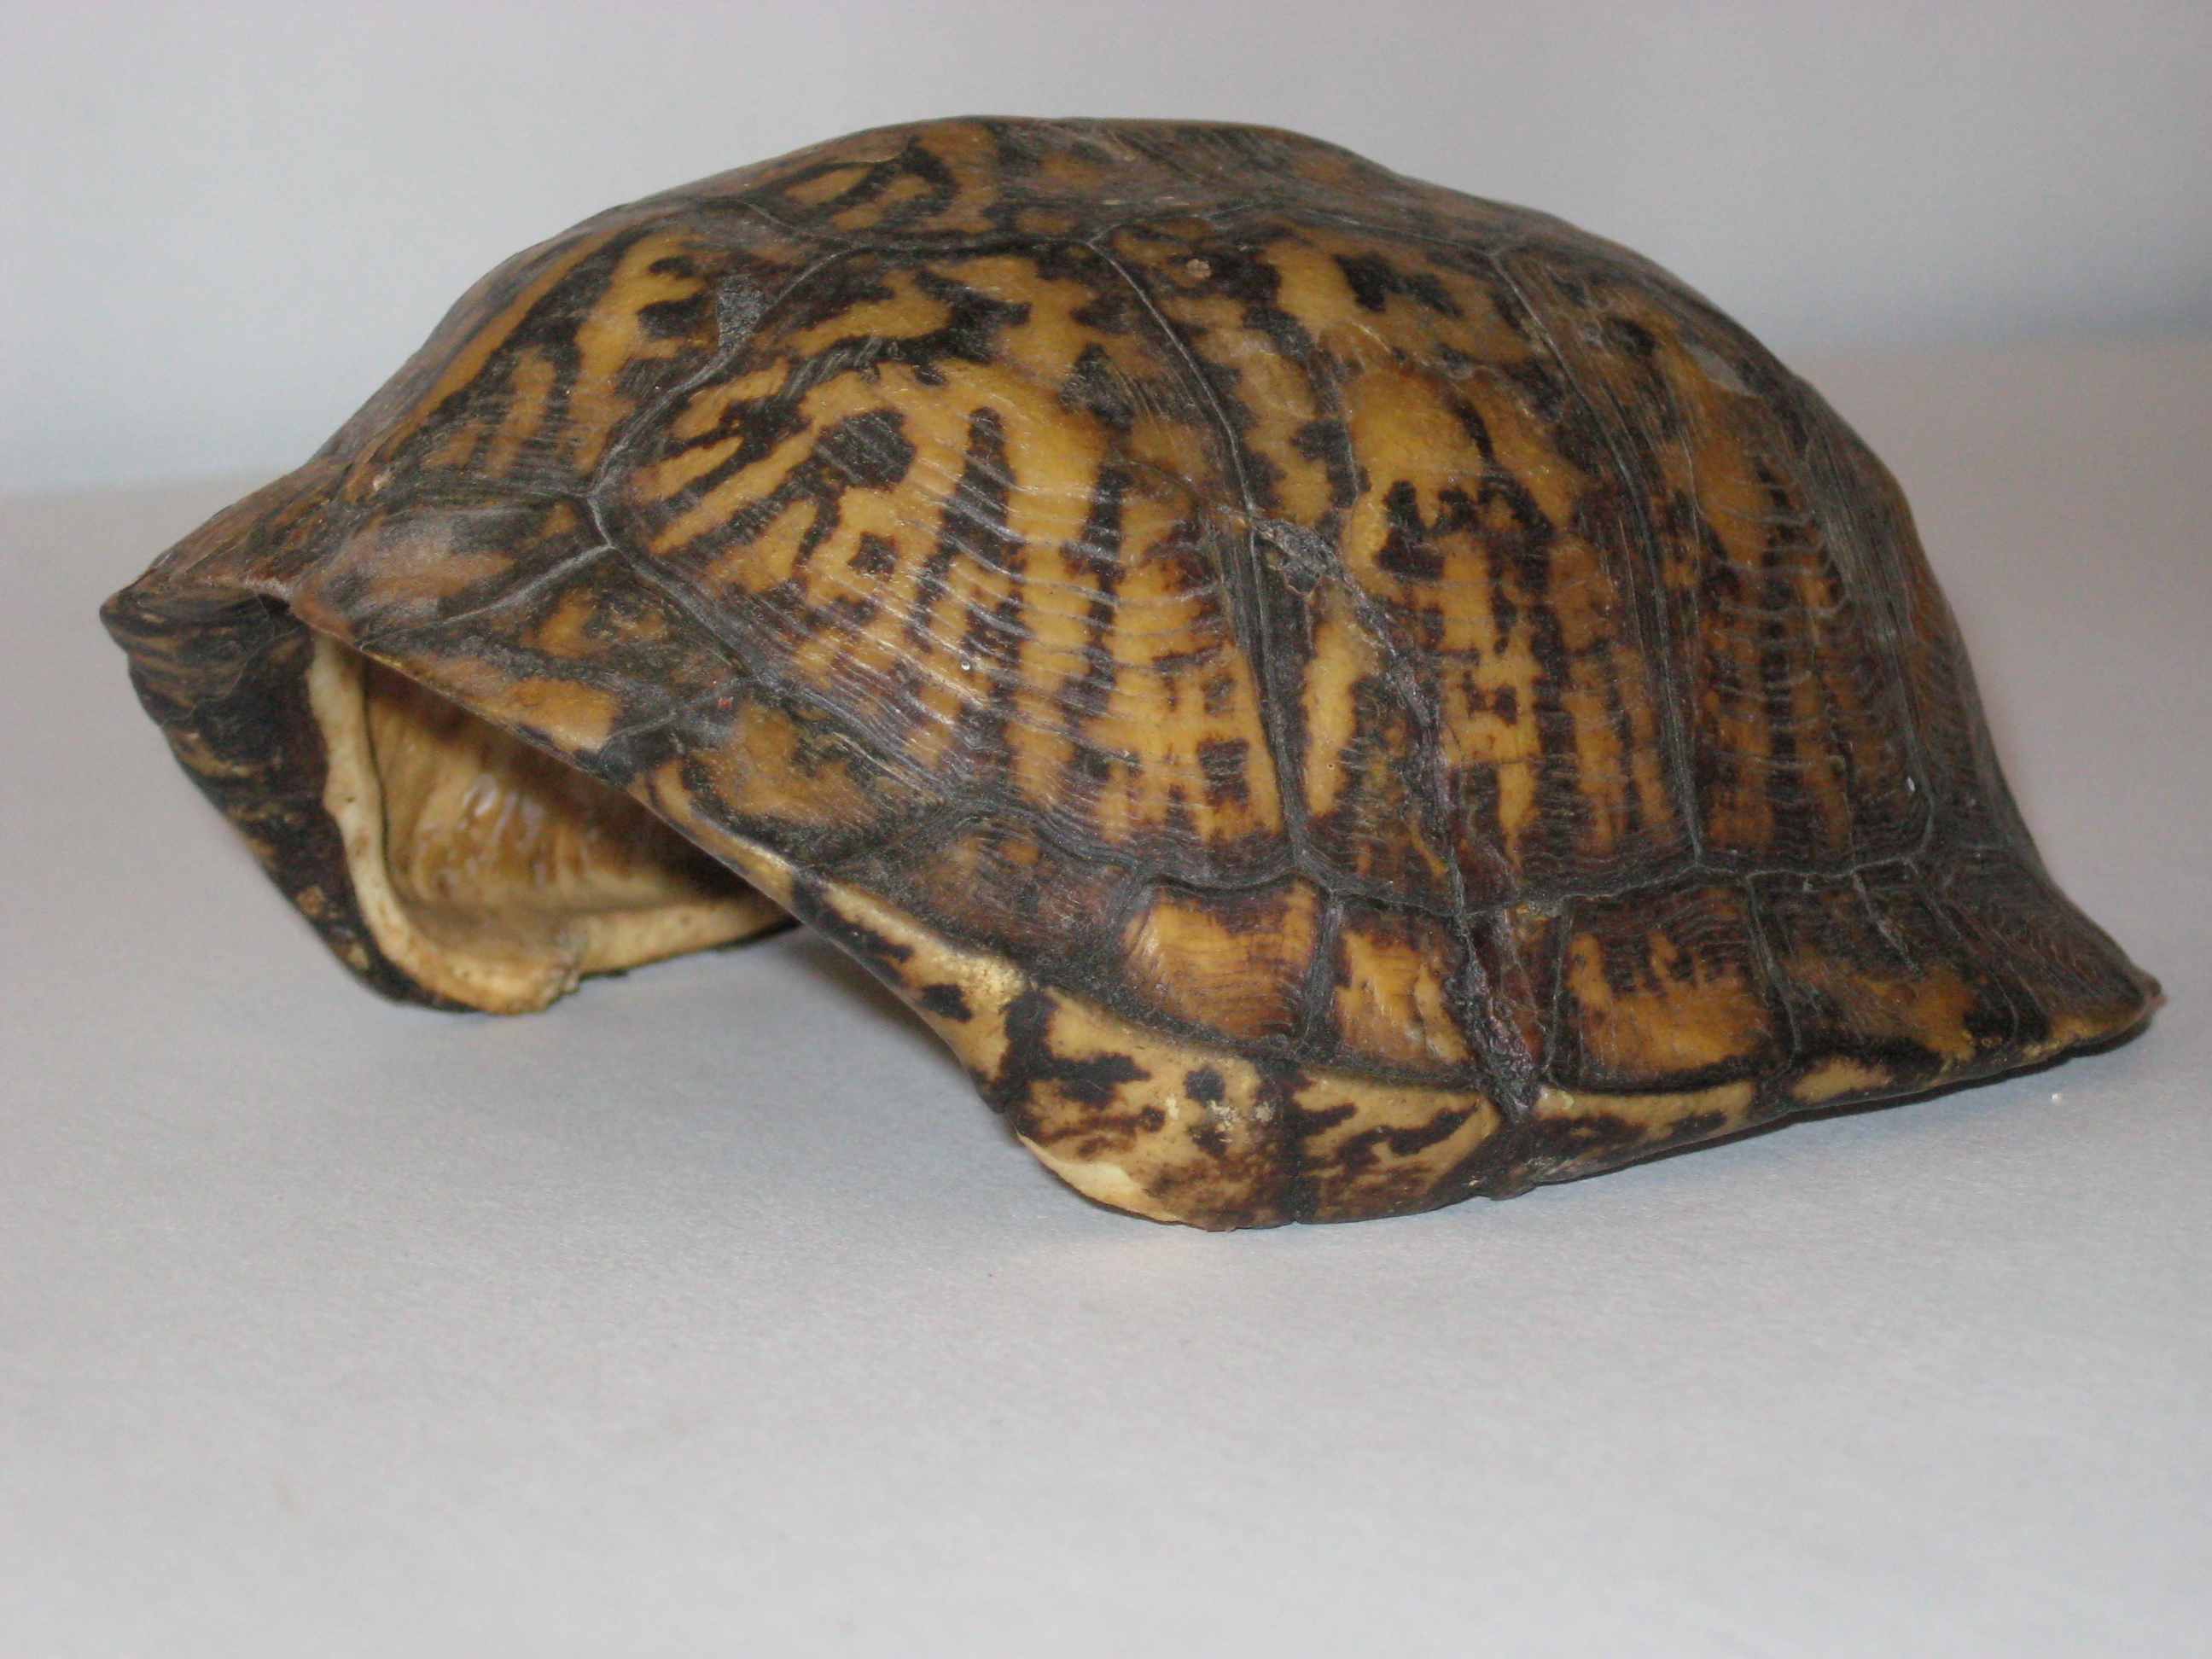 Tortoise vs Turtle - Science and Research